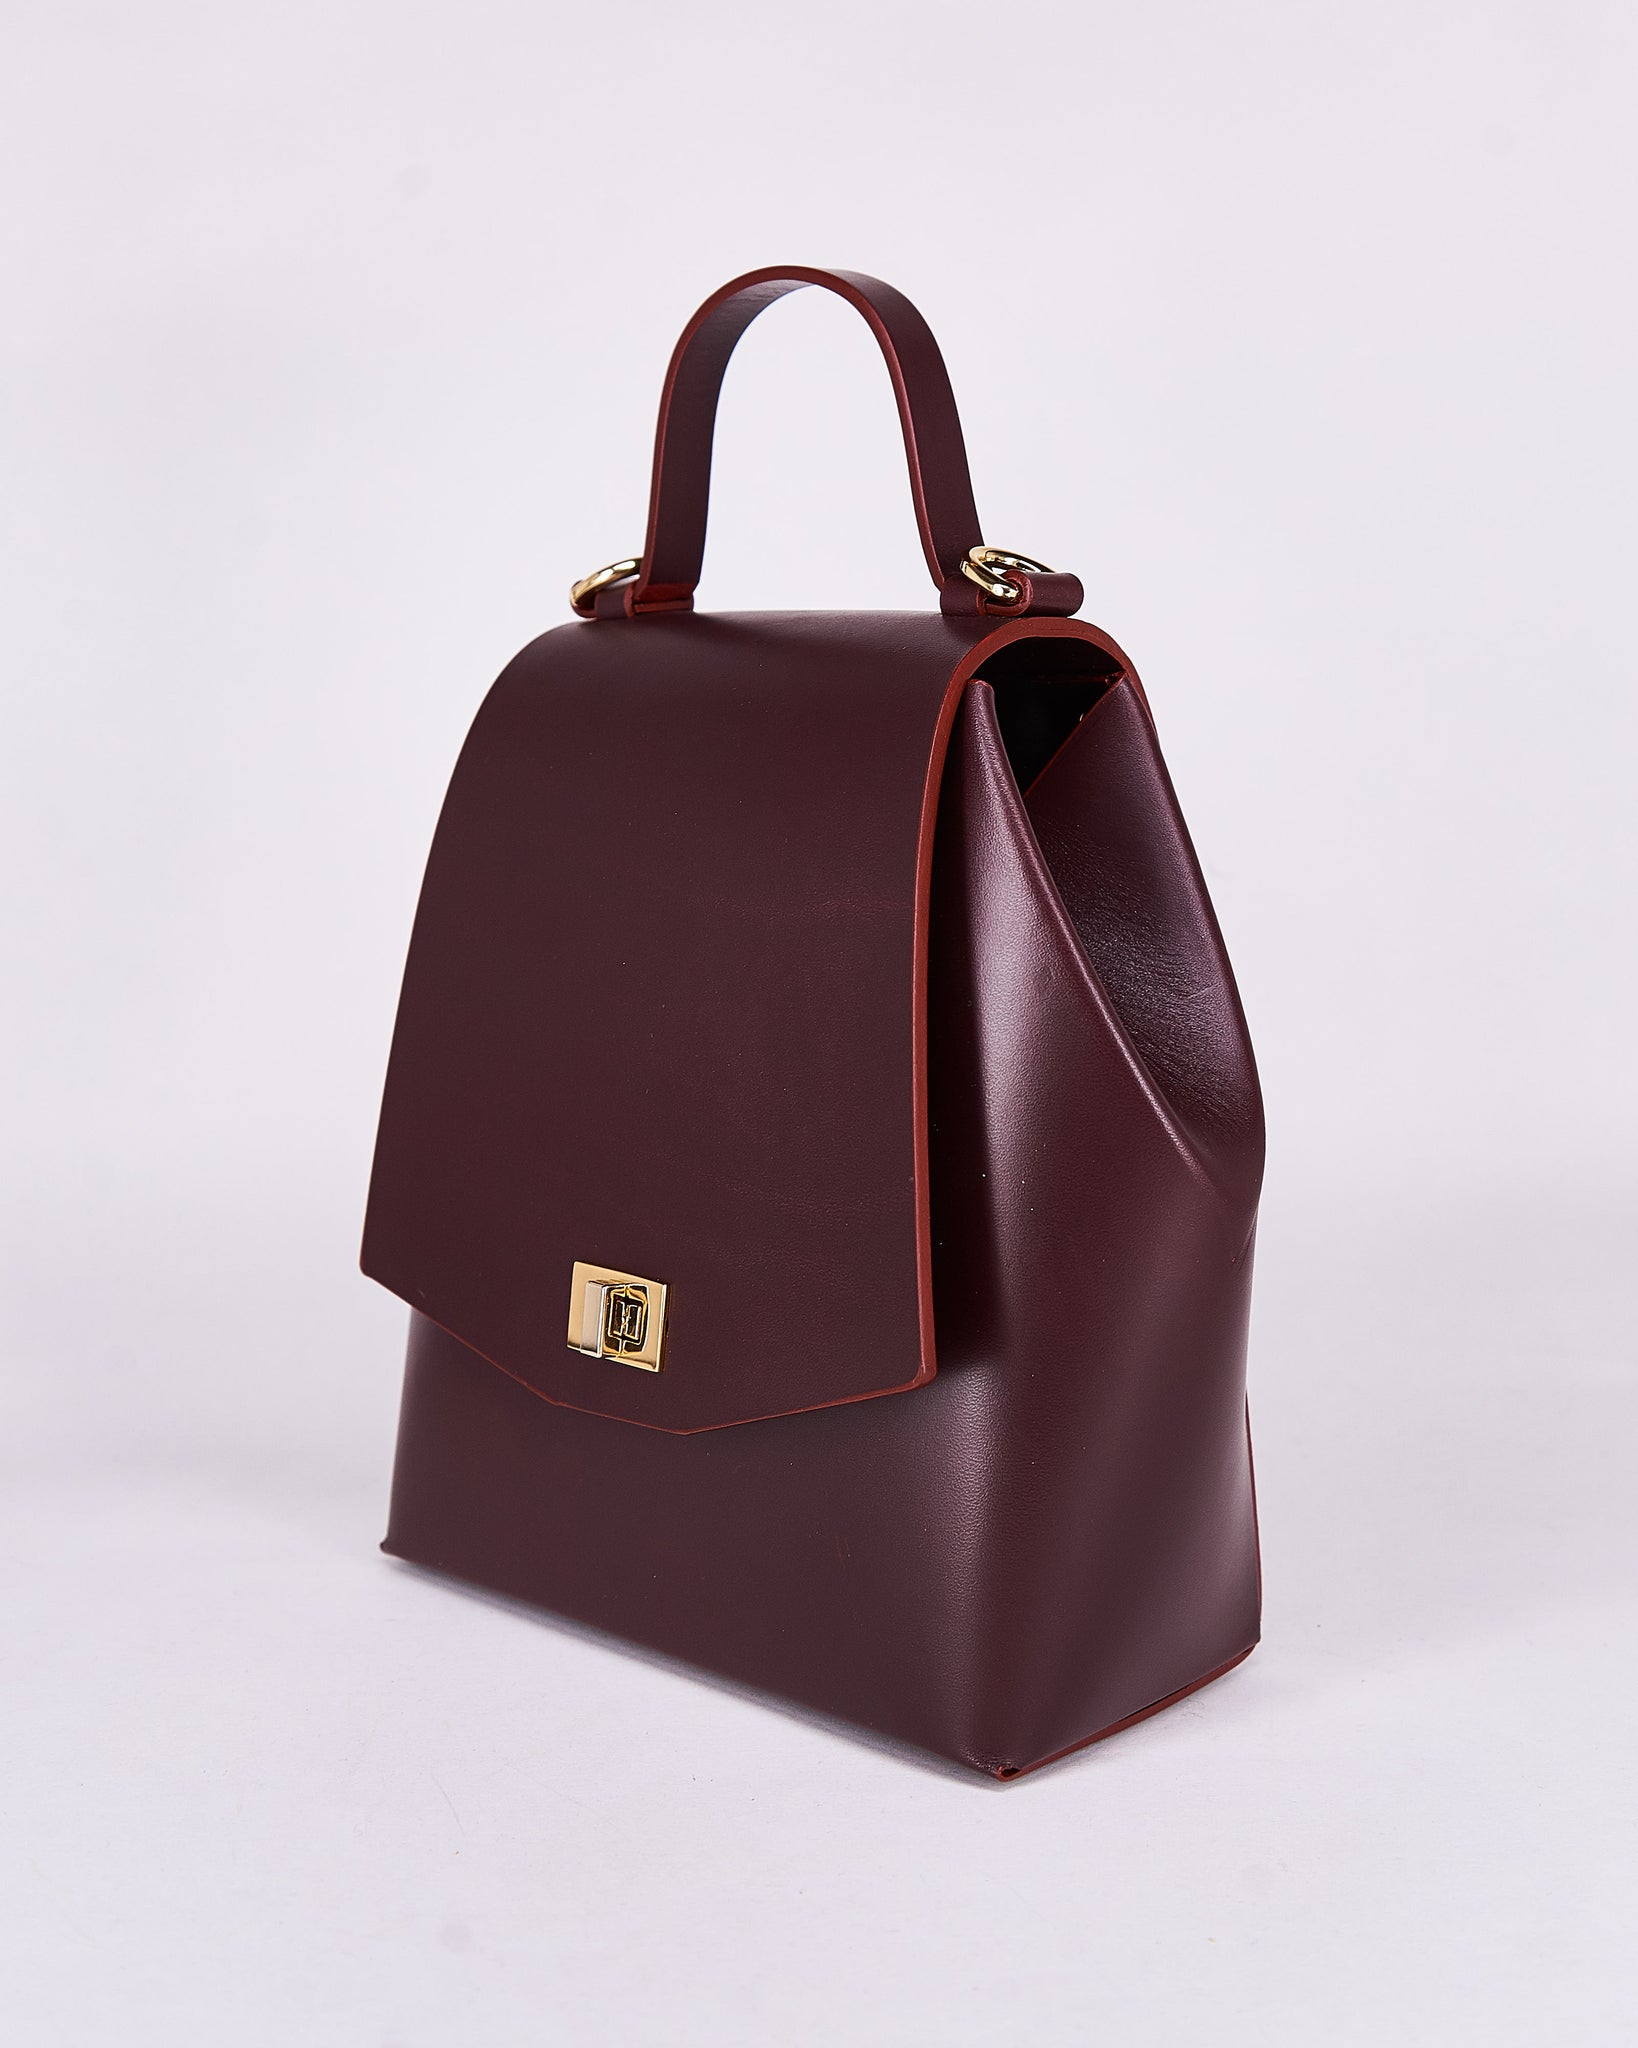 HexBag-Bordeaux-Leather-DesignedbyNuovum-Localdesigners-Barcelona-Side1